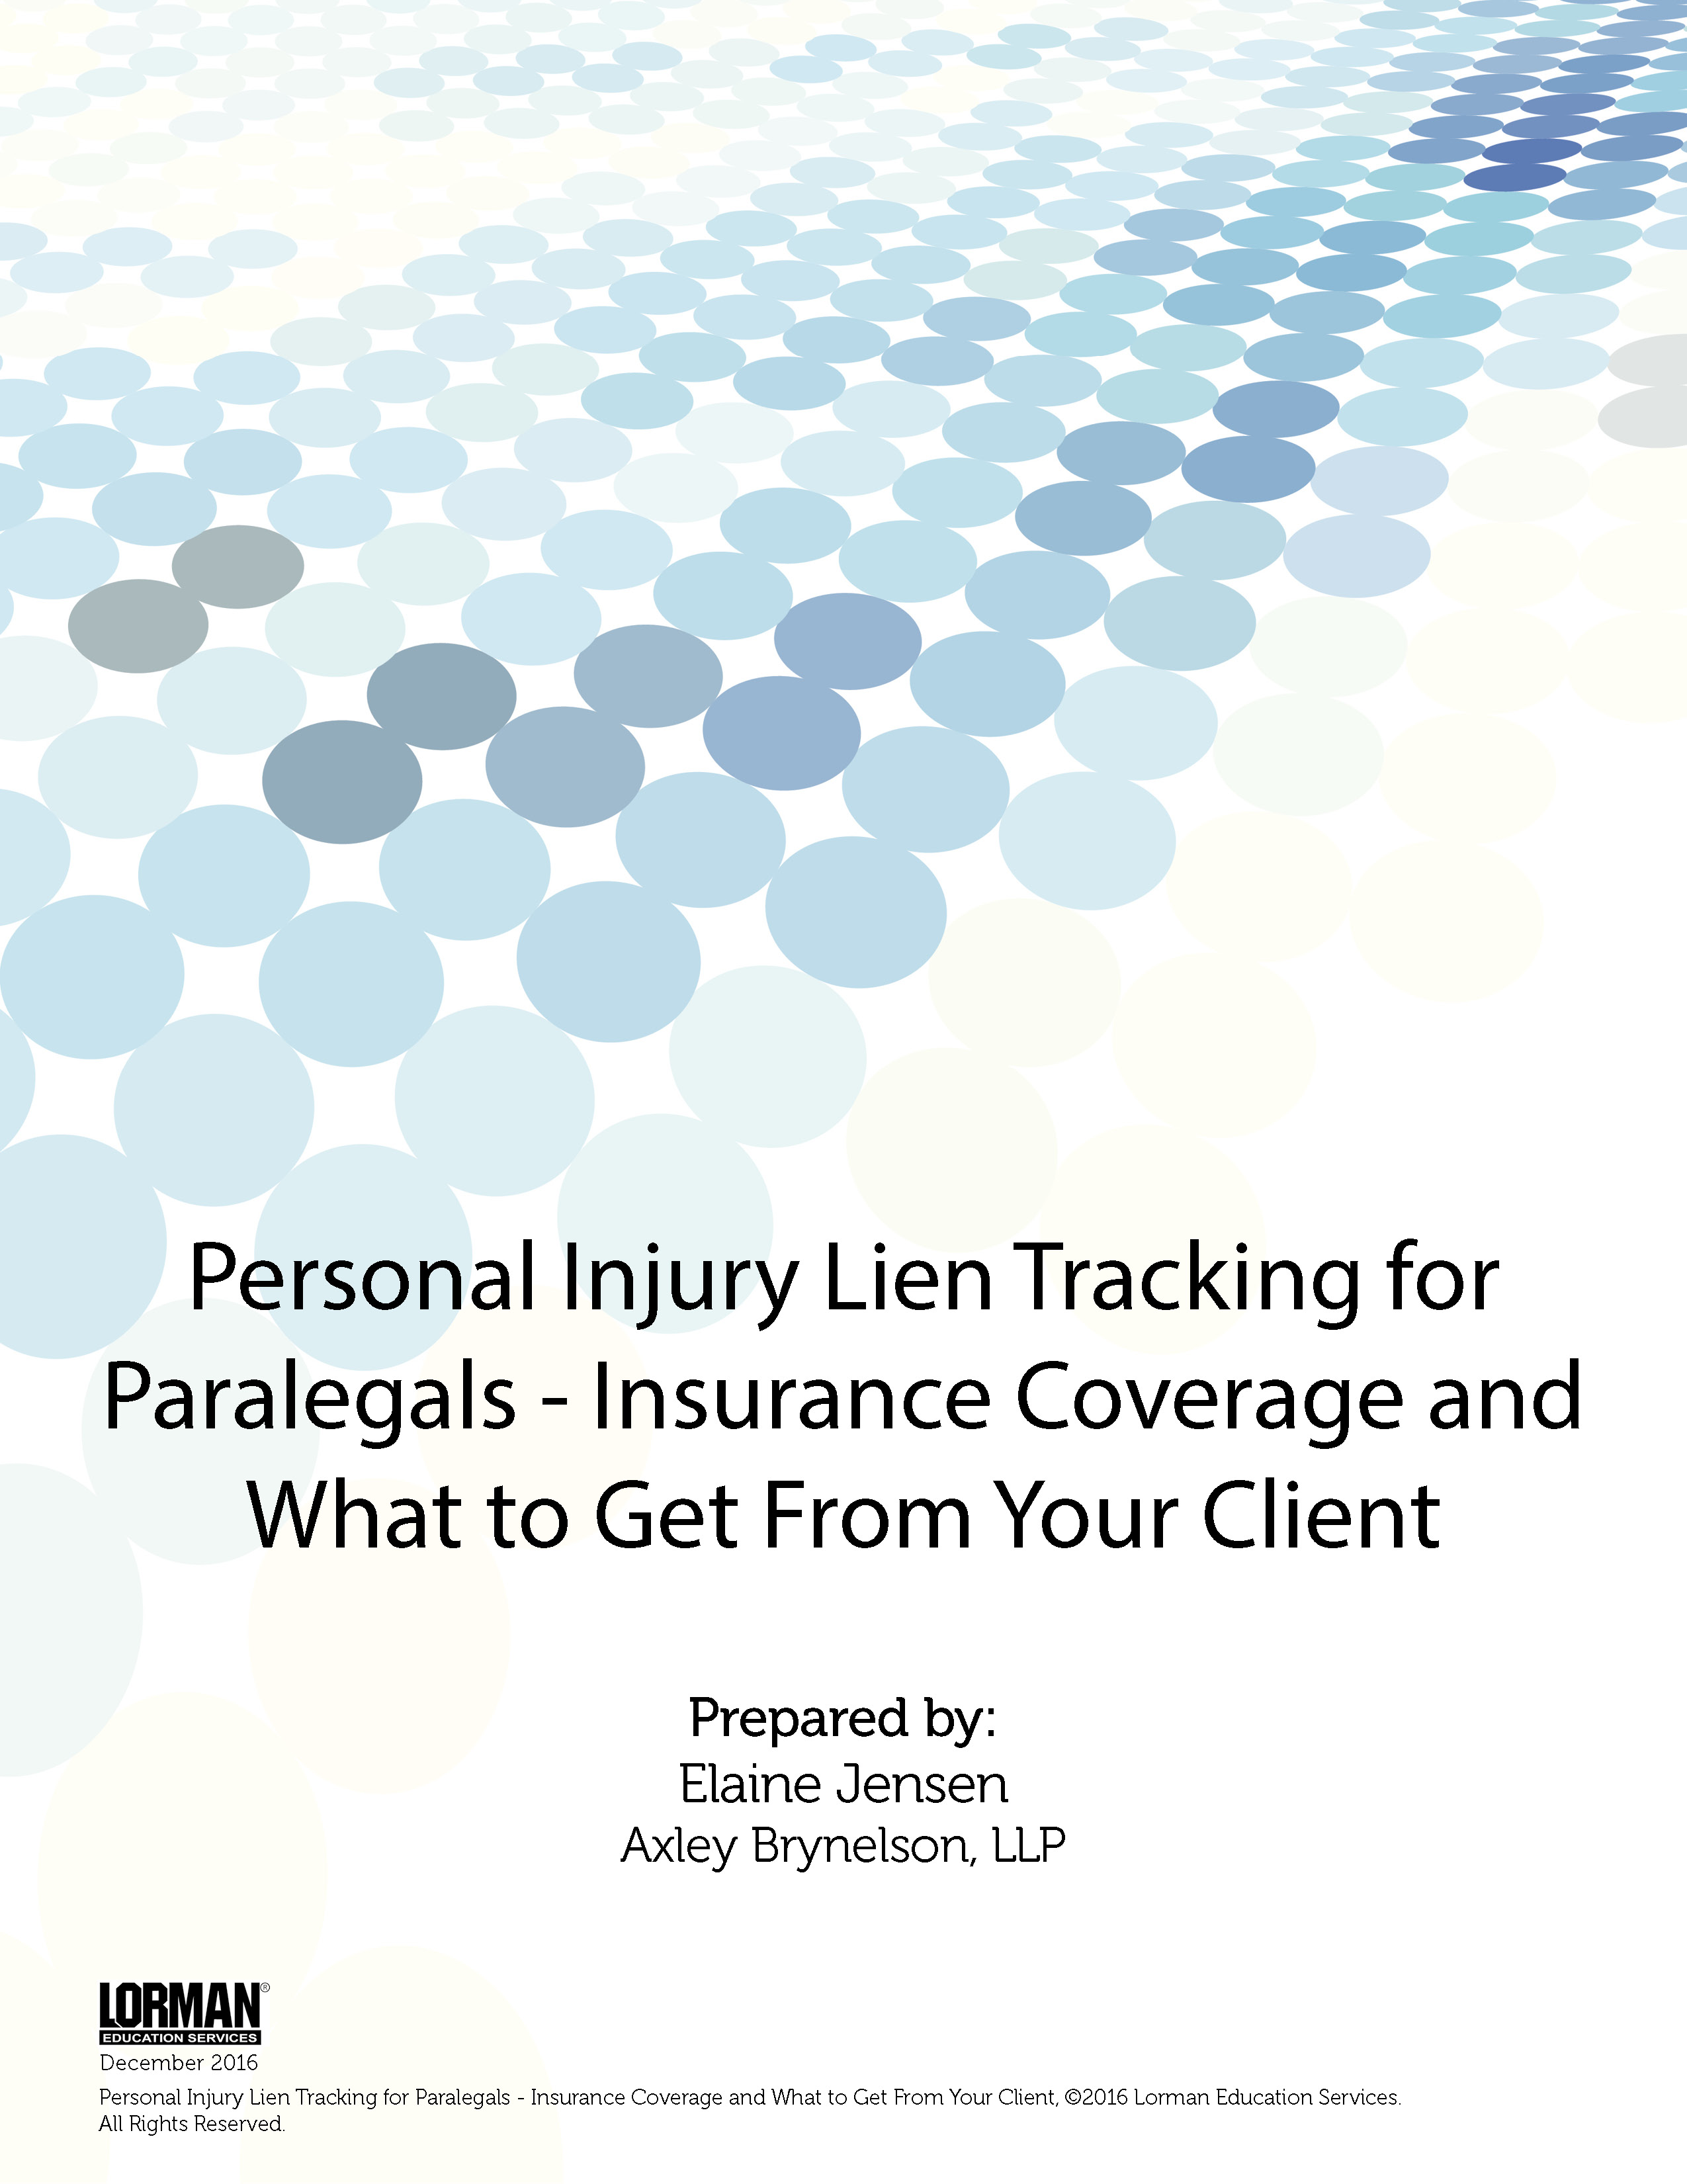 Personal Injury Lien Tracking For Paralegals Insurance Coverage And What To Get From Your Client White Paper Lorman Education Services